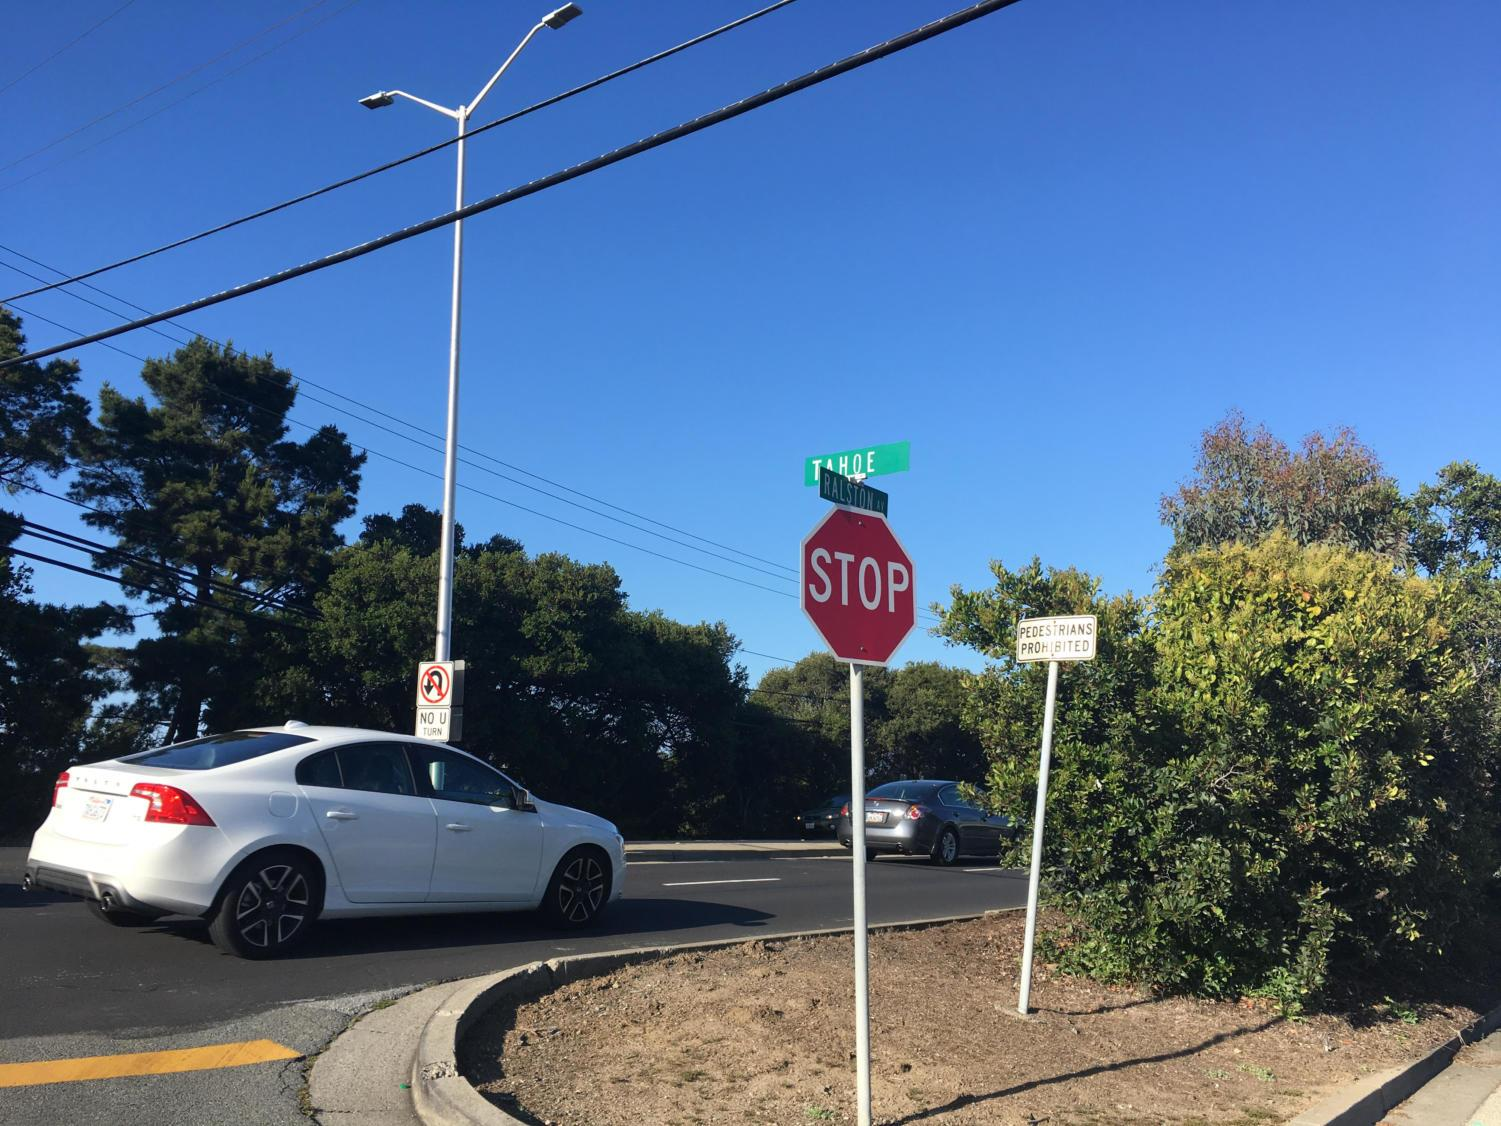 The intersection of Tahoe Drive and Ralston Avenue is a place that experiences congestion at multiple times a day. Its troublesome traffic has led to the introducing of the Tahoe Drive and Ralston Avenue Intersection Improvements project.